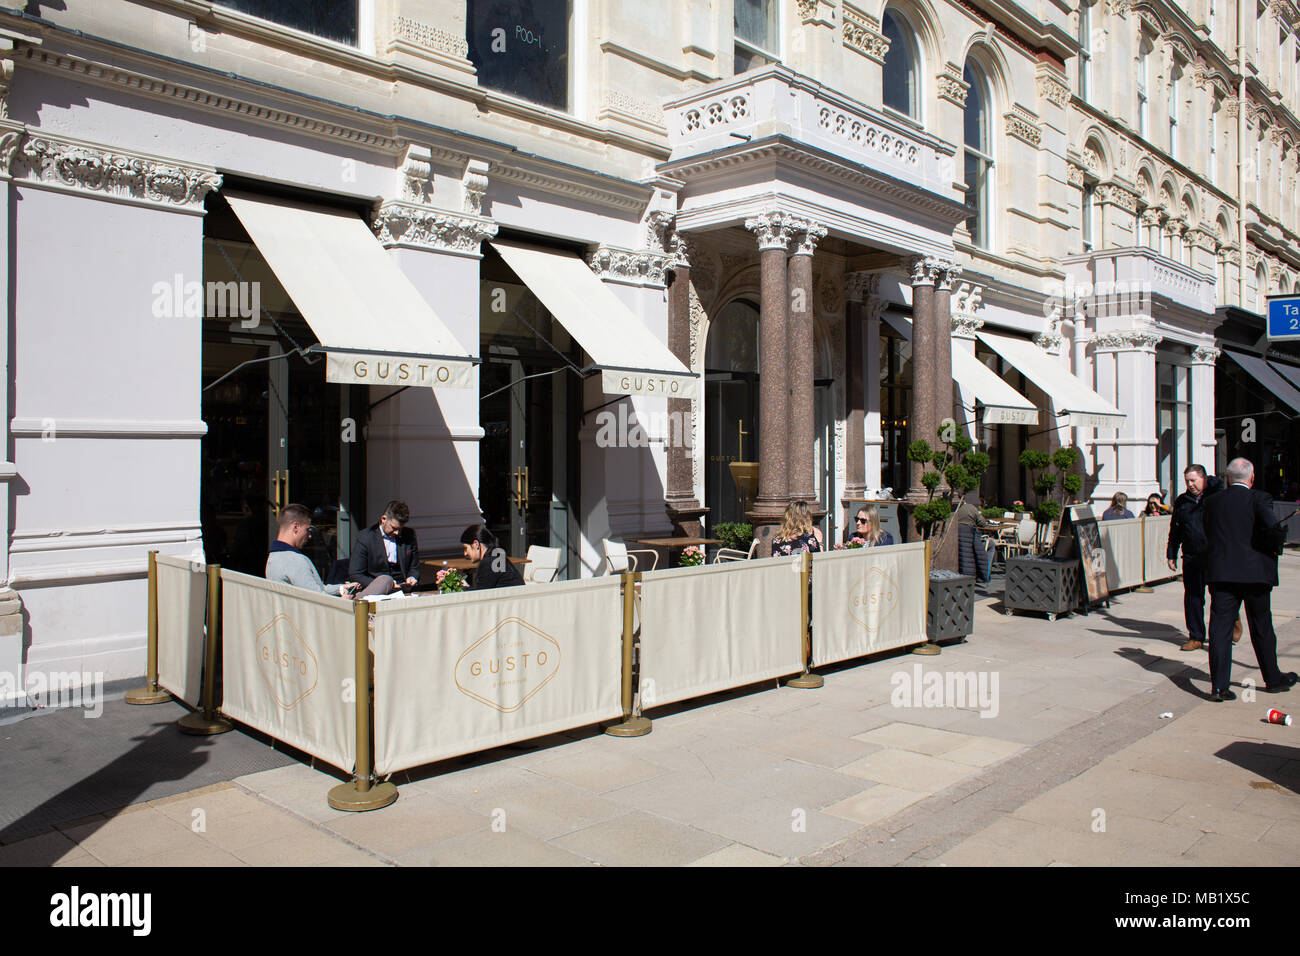 The Gusto bar, situated in the Grand Hotel building, Colmore Row, Birmingham City Centre, UK - Stock Image